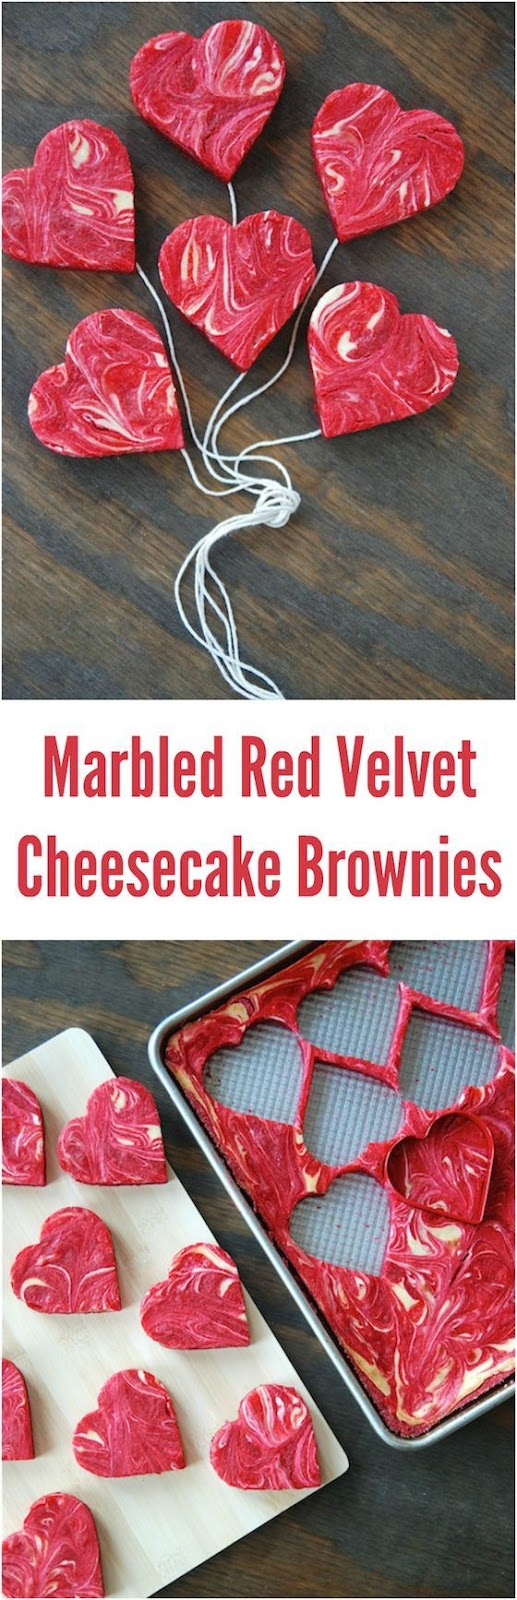 MARBLED RED VELVET CHEESECAKE BROWNIES